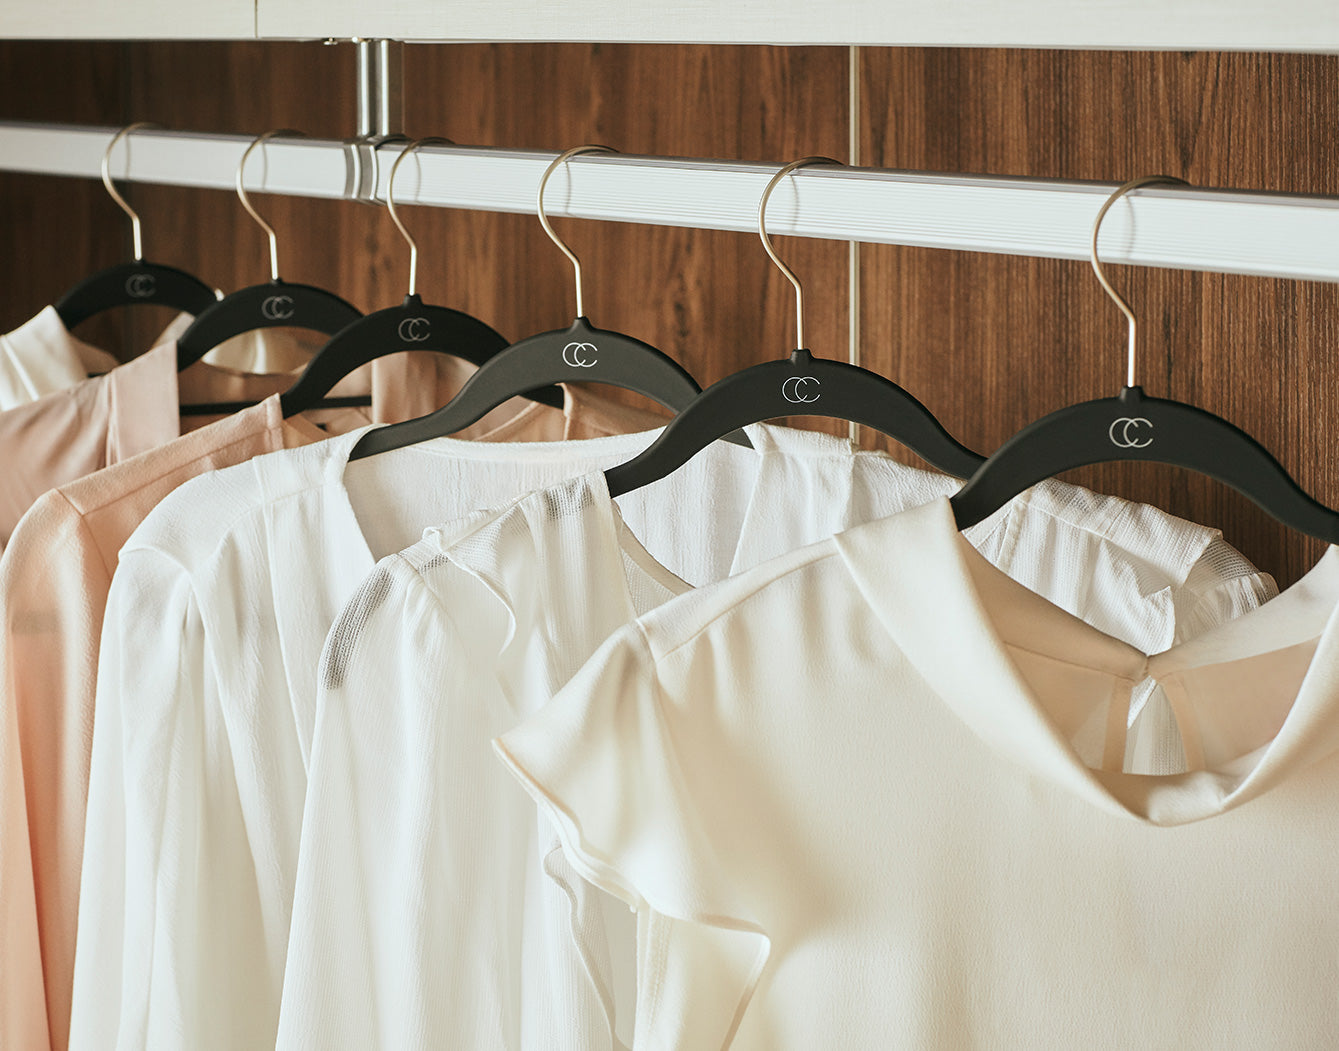 Black Hangers with White Blouses in Custom Closet